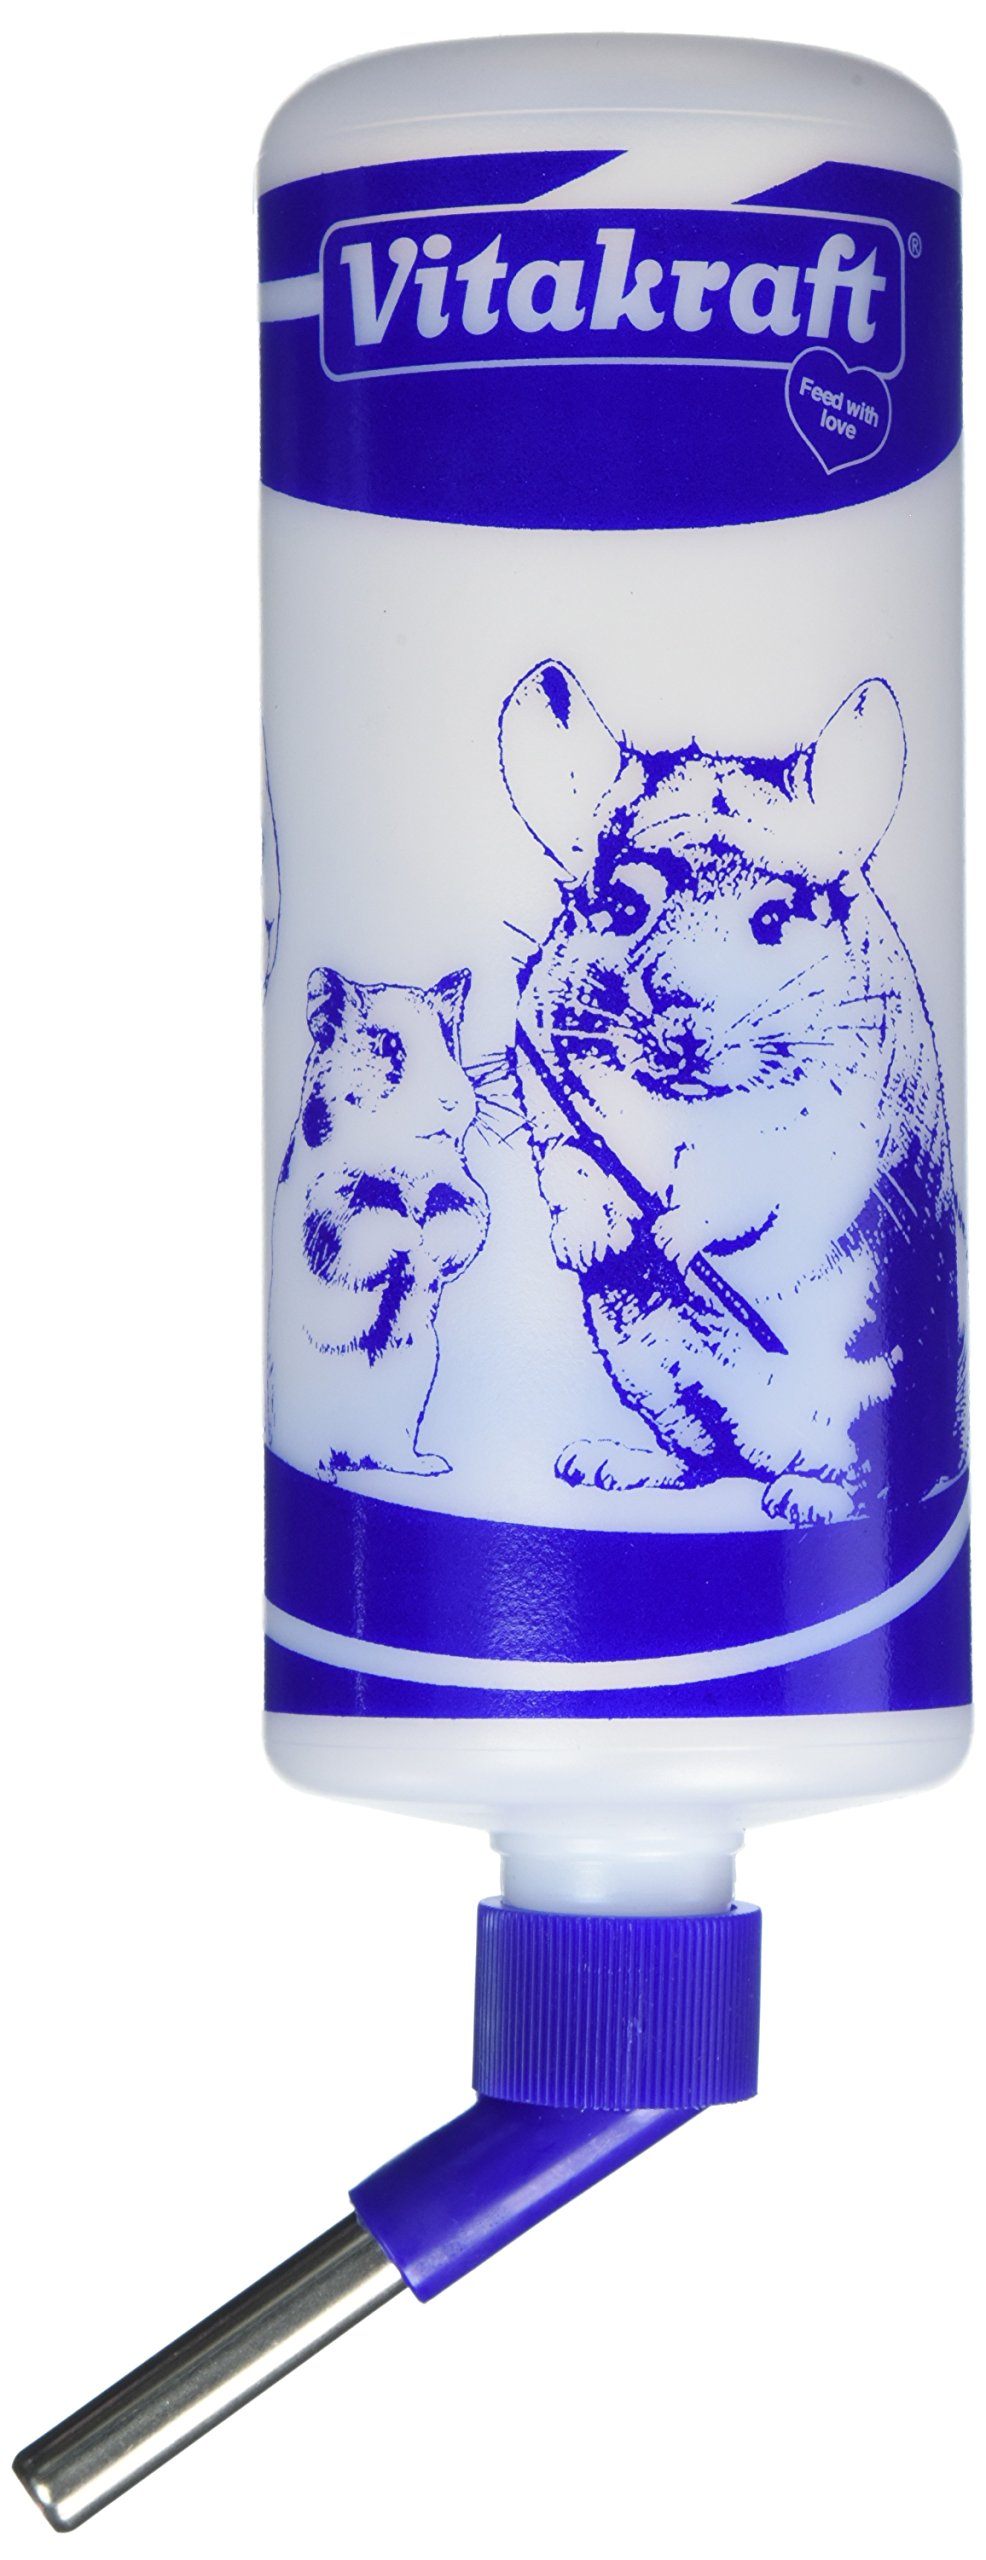 Vitakraft Water Bottle for Small Animals, 32-Ounce